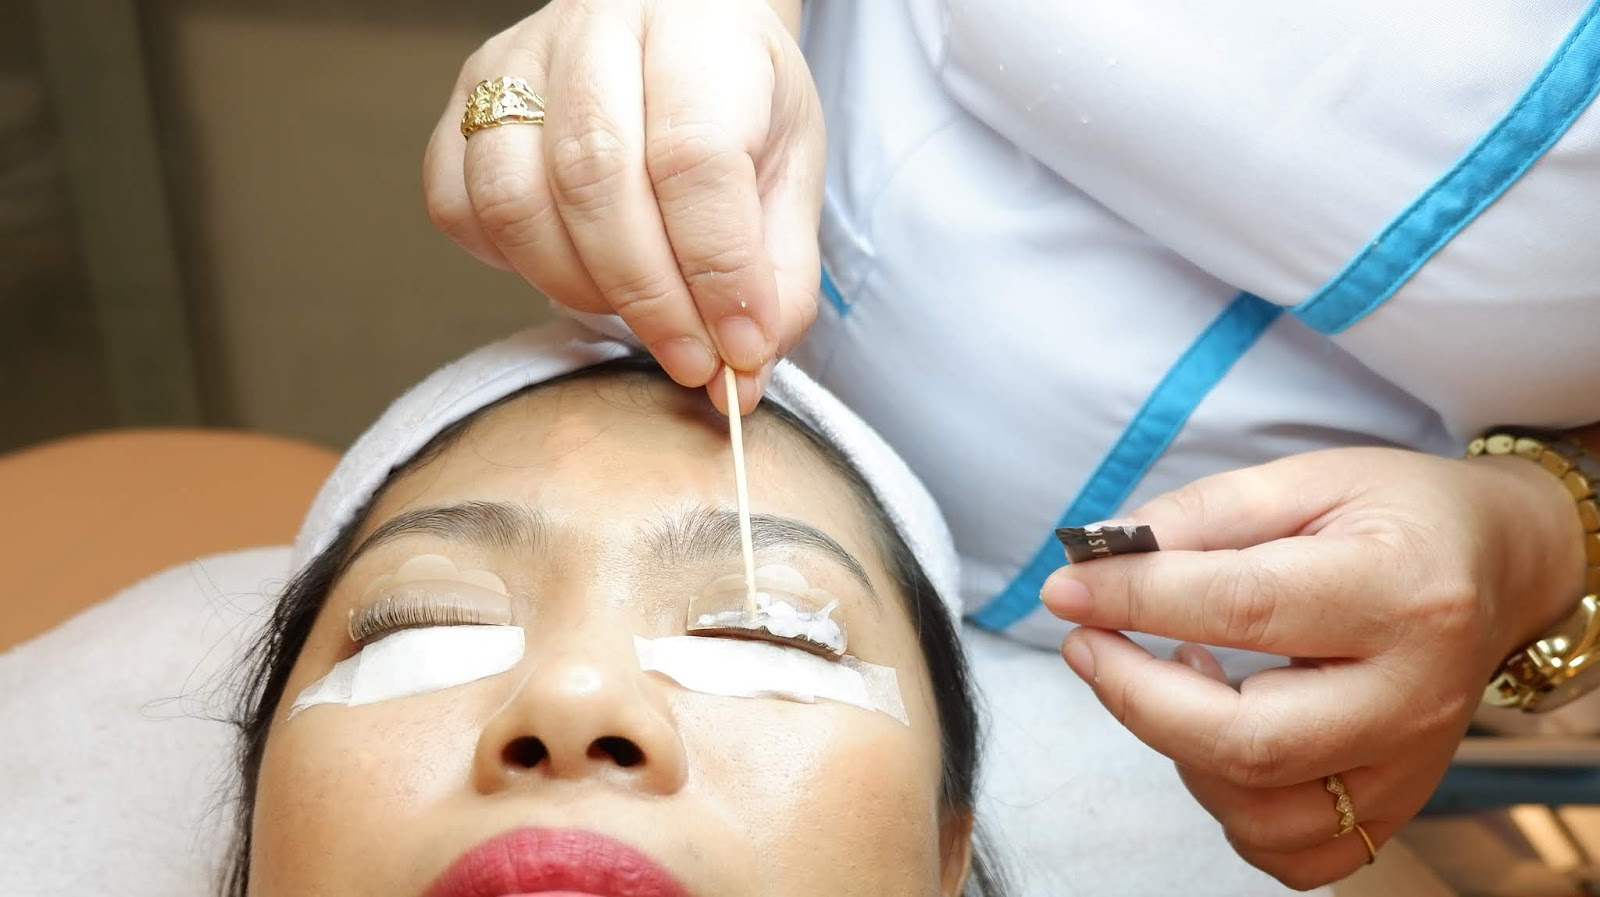 SKINHOUSE BEAUTY AND LASER CLINIC: MY FIRST KERATIN LASH LIFT WITH TINT EXPERIENCED